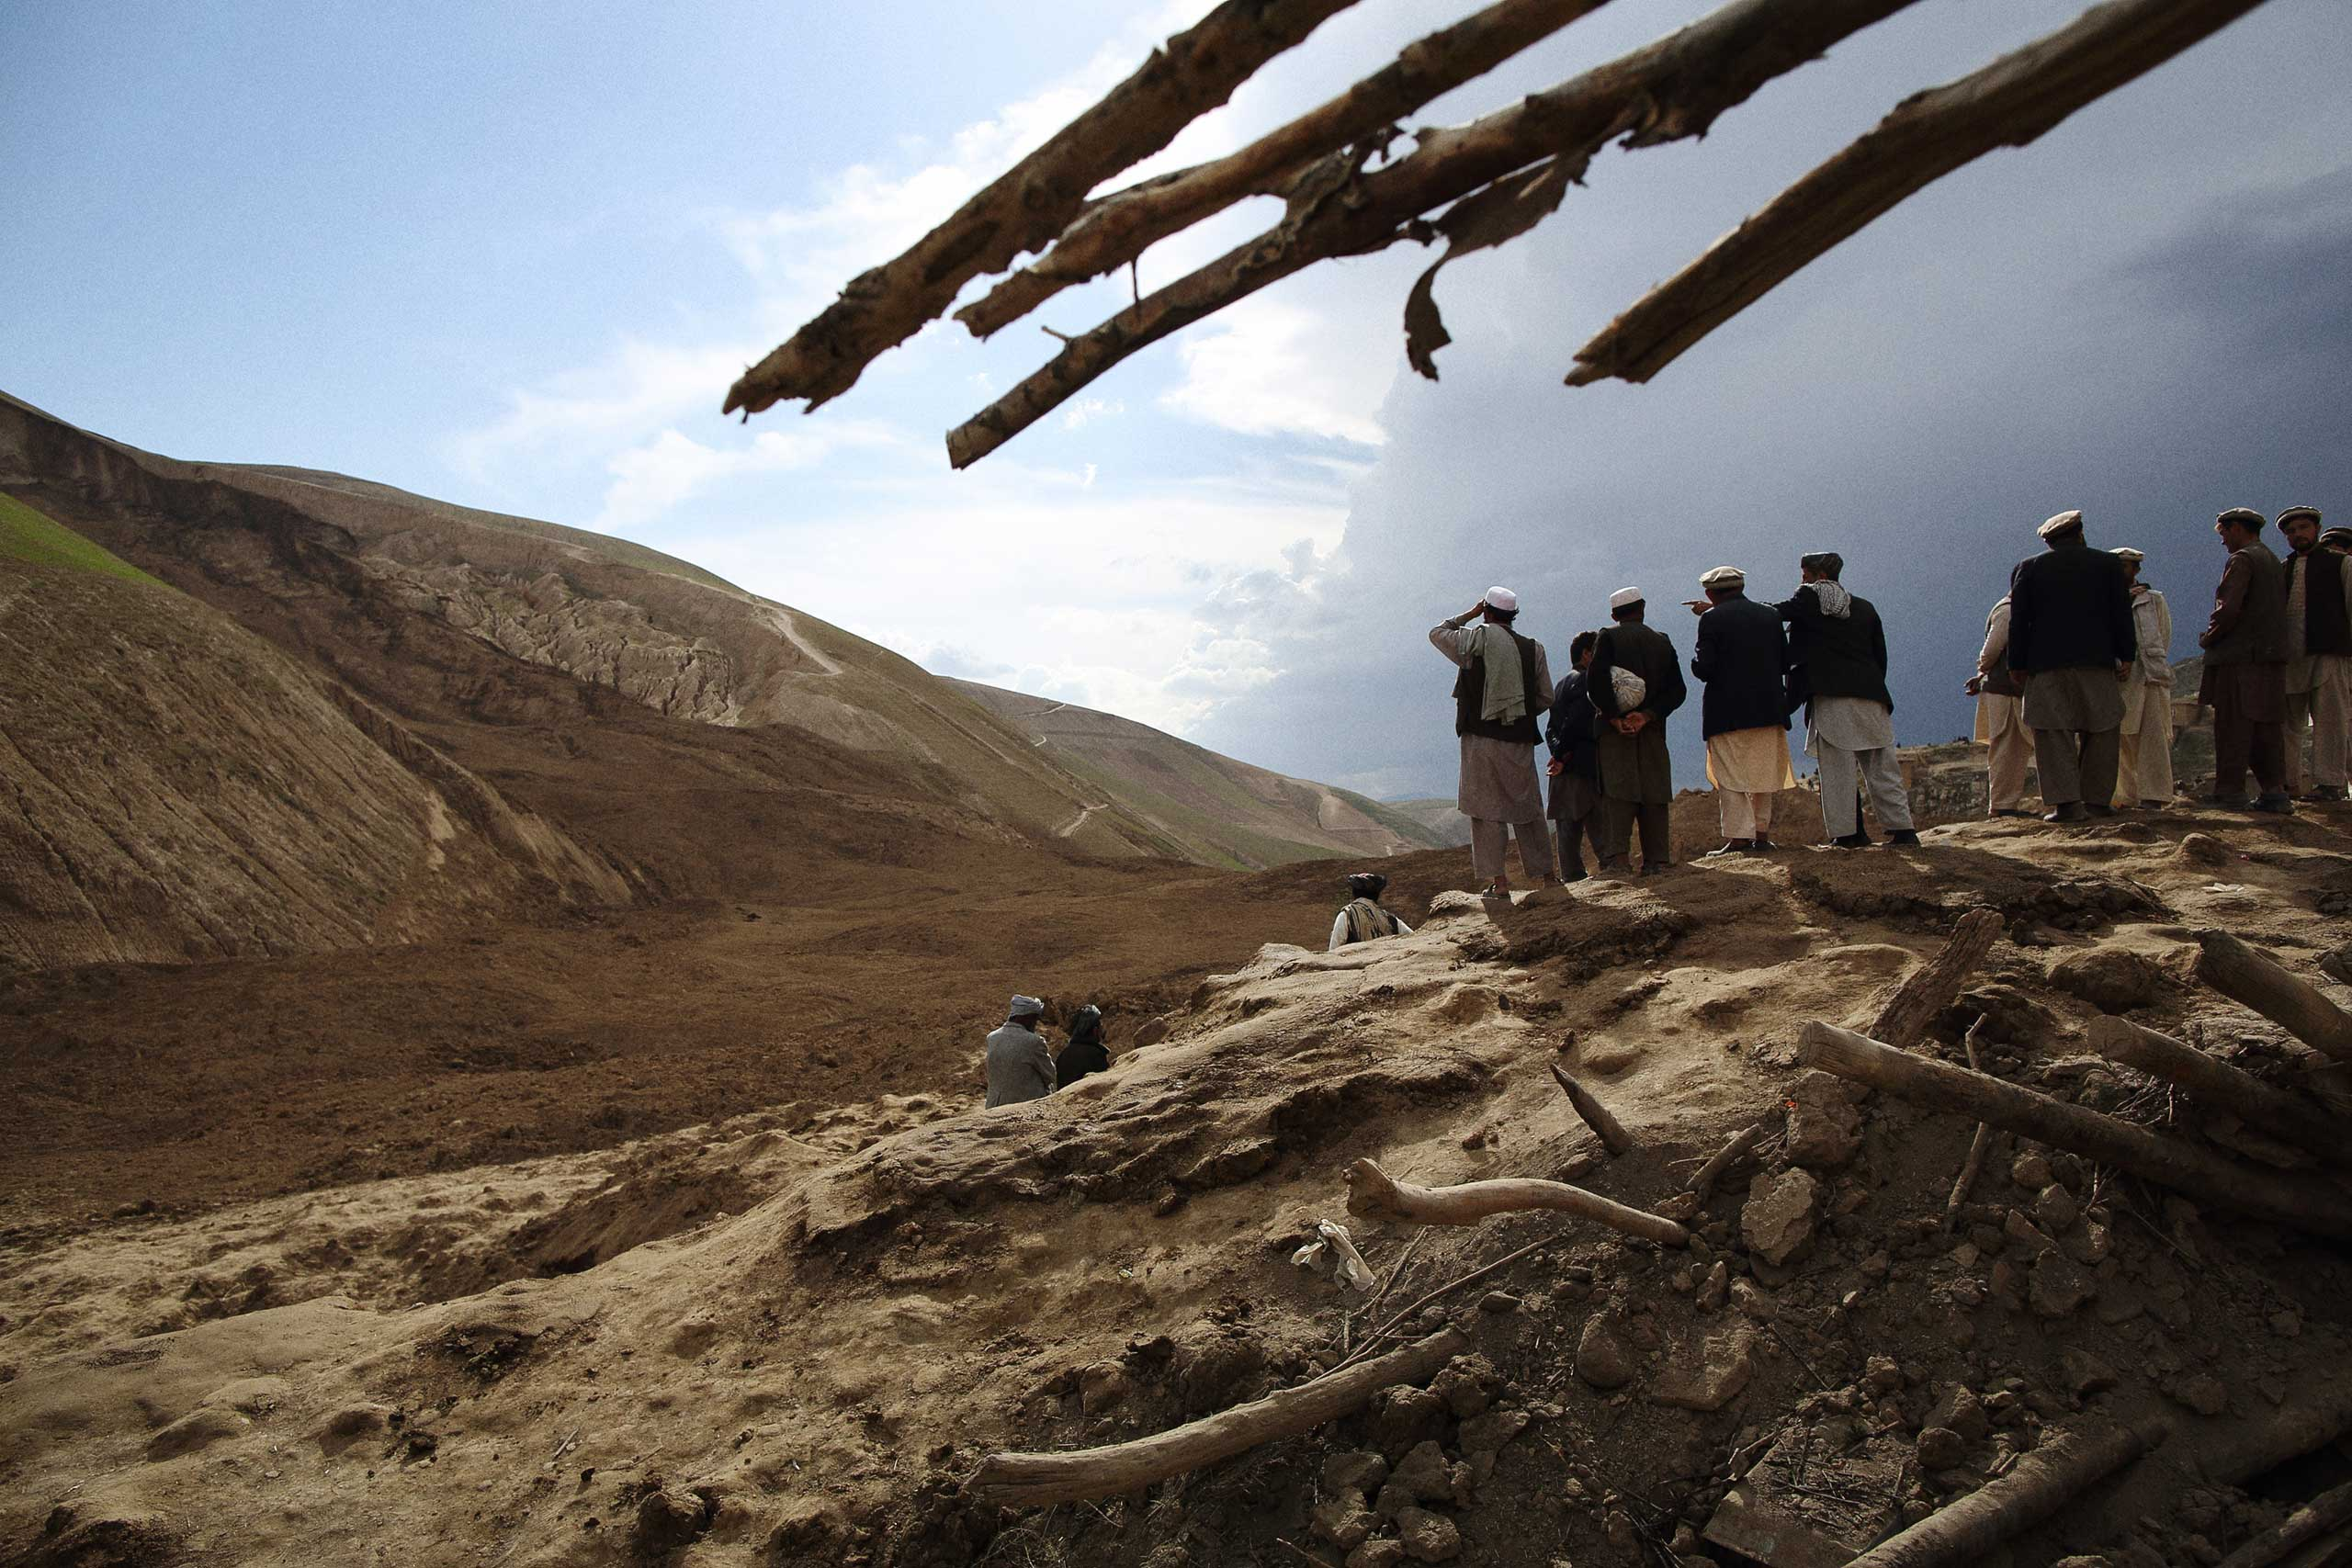 May 3, 2014. At least 2,100 people are presumed dead after two catastrophic landslides buried hundreds of homes in the Argo district in the mountainous northeastern state of Badakhshan, Afghanistan. Men from the village look over the site of the landslide from a mound of mud that made it's way up the adjacent side of the valley. From                                 Hopes for Survivors Fade After Afghan Landslide